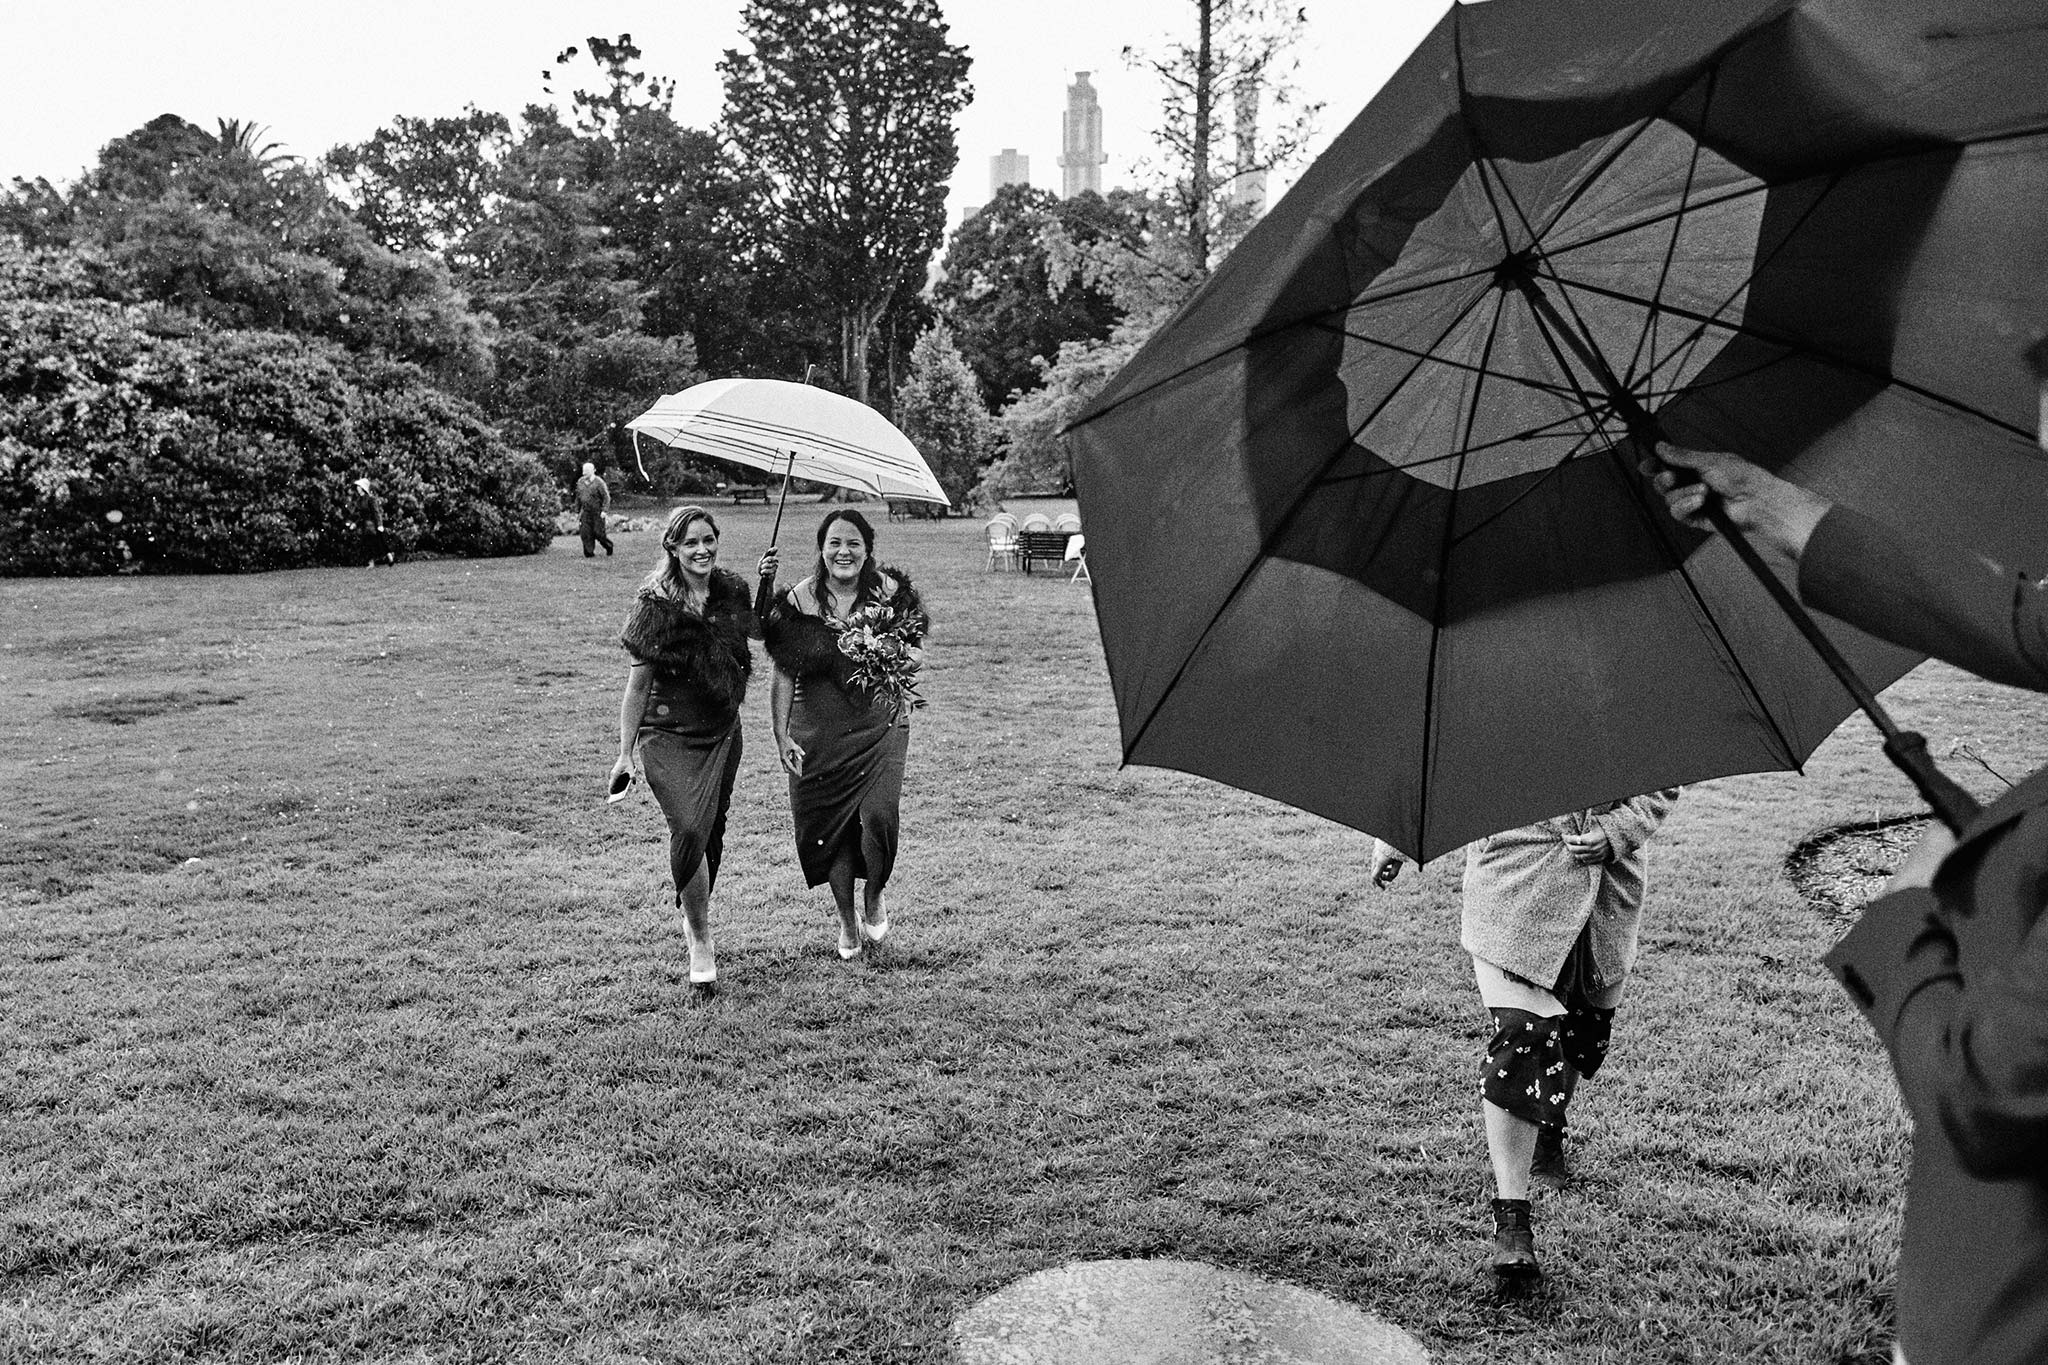 Melbourne Royal Botanical Garden Wedding Ceremony rain umbrella